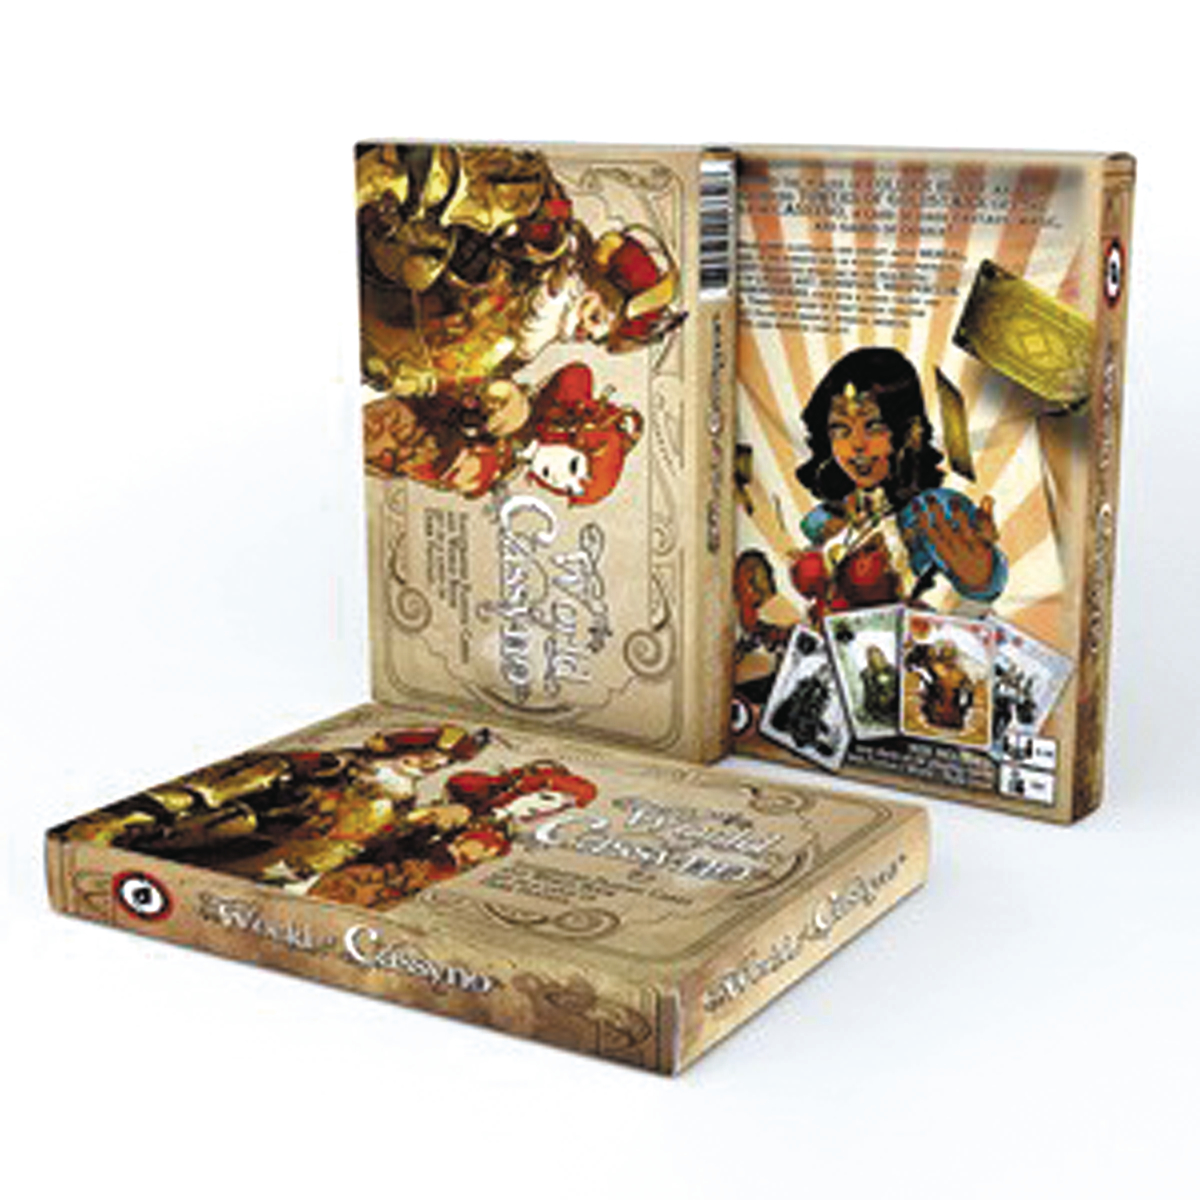 WORLD OF CASSYNO (GAMEBOX SET)